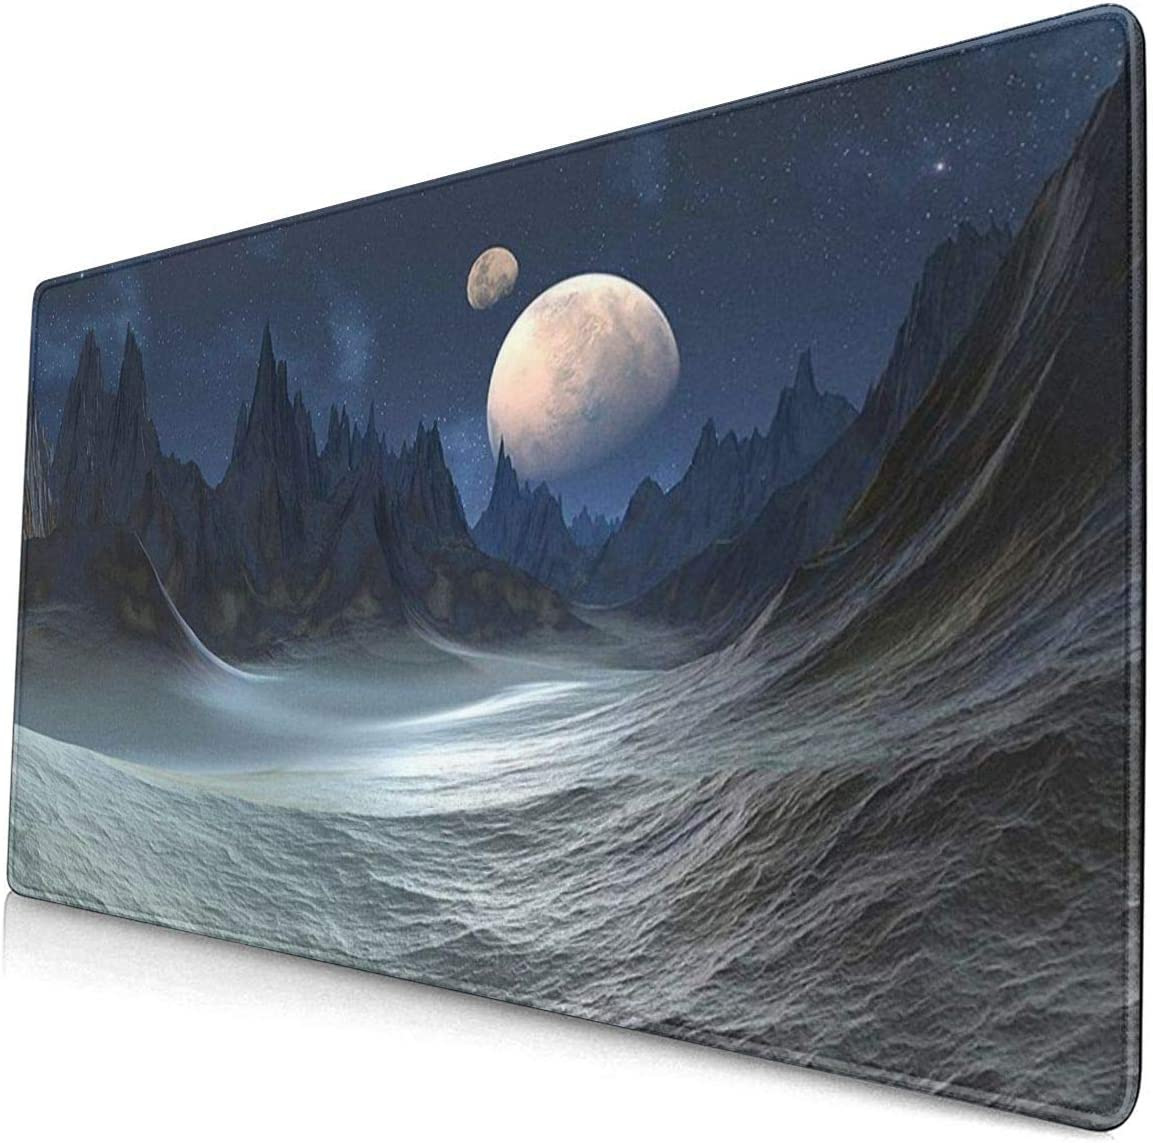 Non-Slip Rubber Mouse Pad For16x30 in Sci Fi Landscape Moon Scene Space Mountain Gaming Mouse Pad